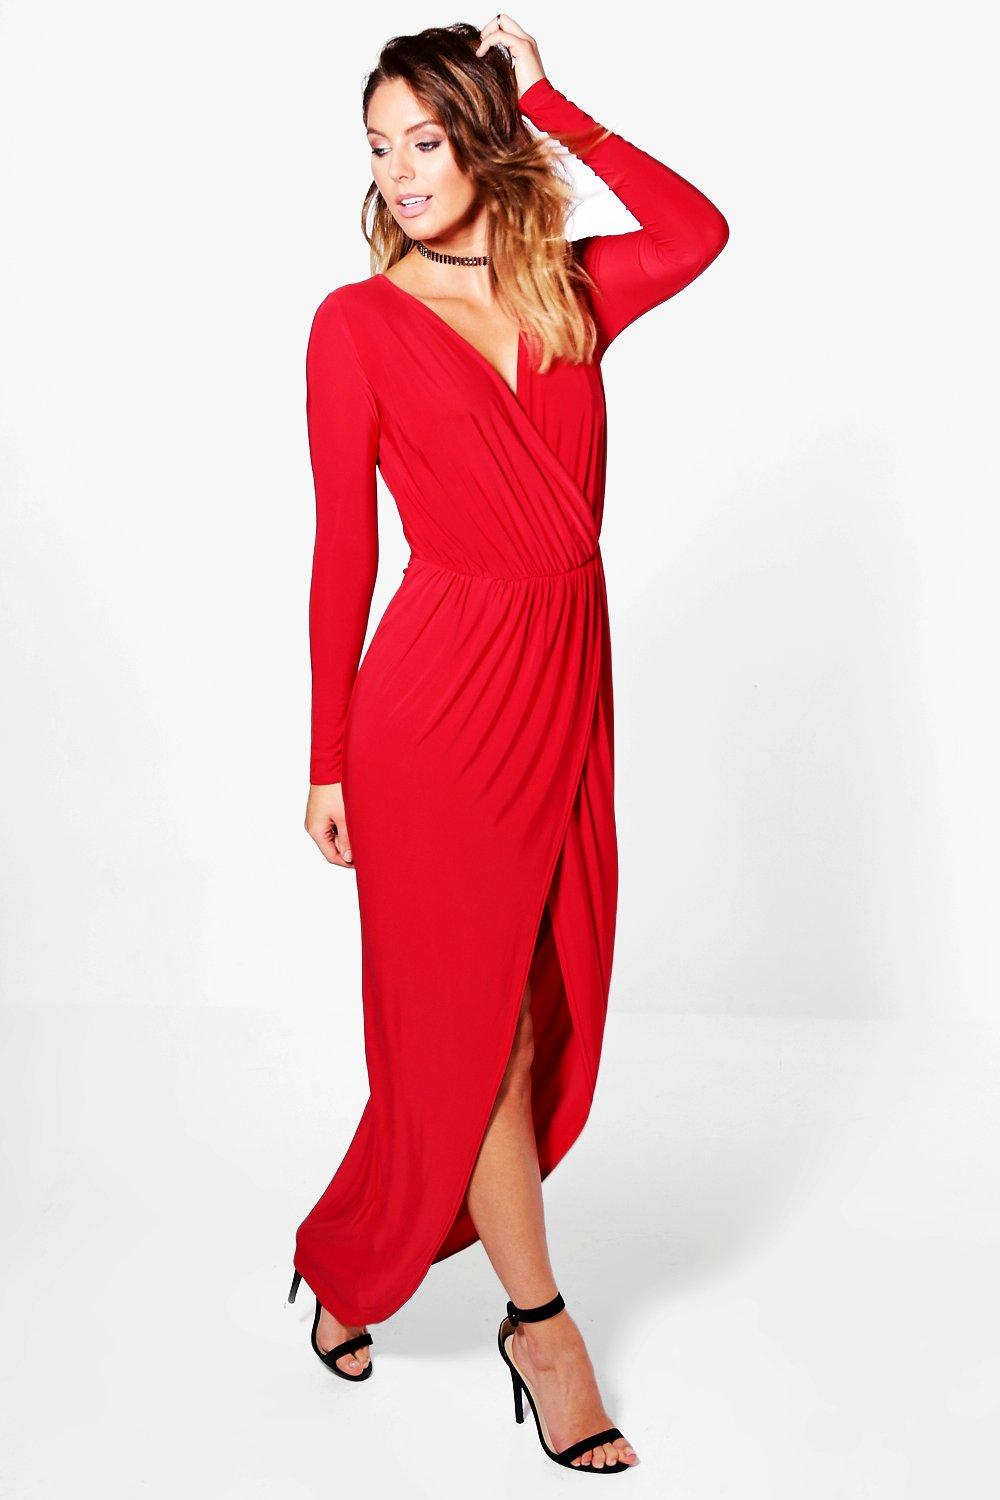 1f399cffe4d Womens Red Slinky Wrap Top Maxi Dress. Hover to zoom